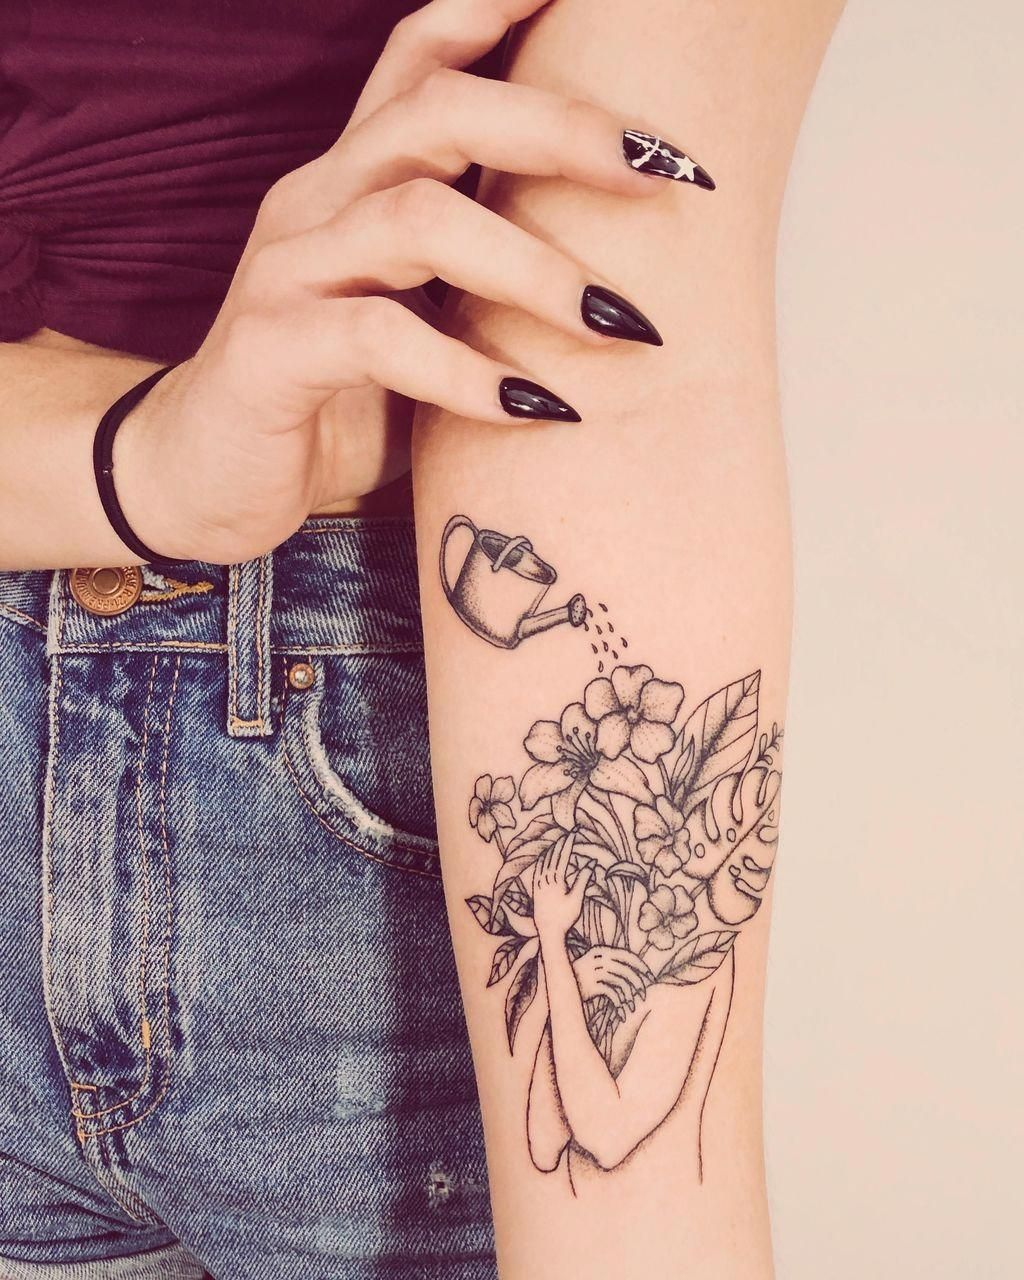 Pin By Paige On Tattoos In 2020 (With Images)